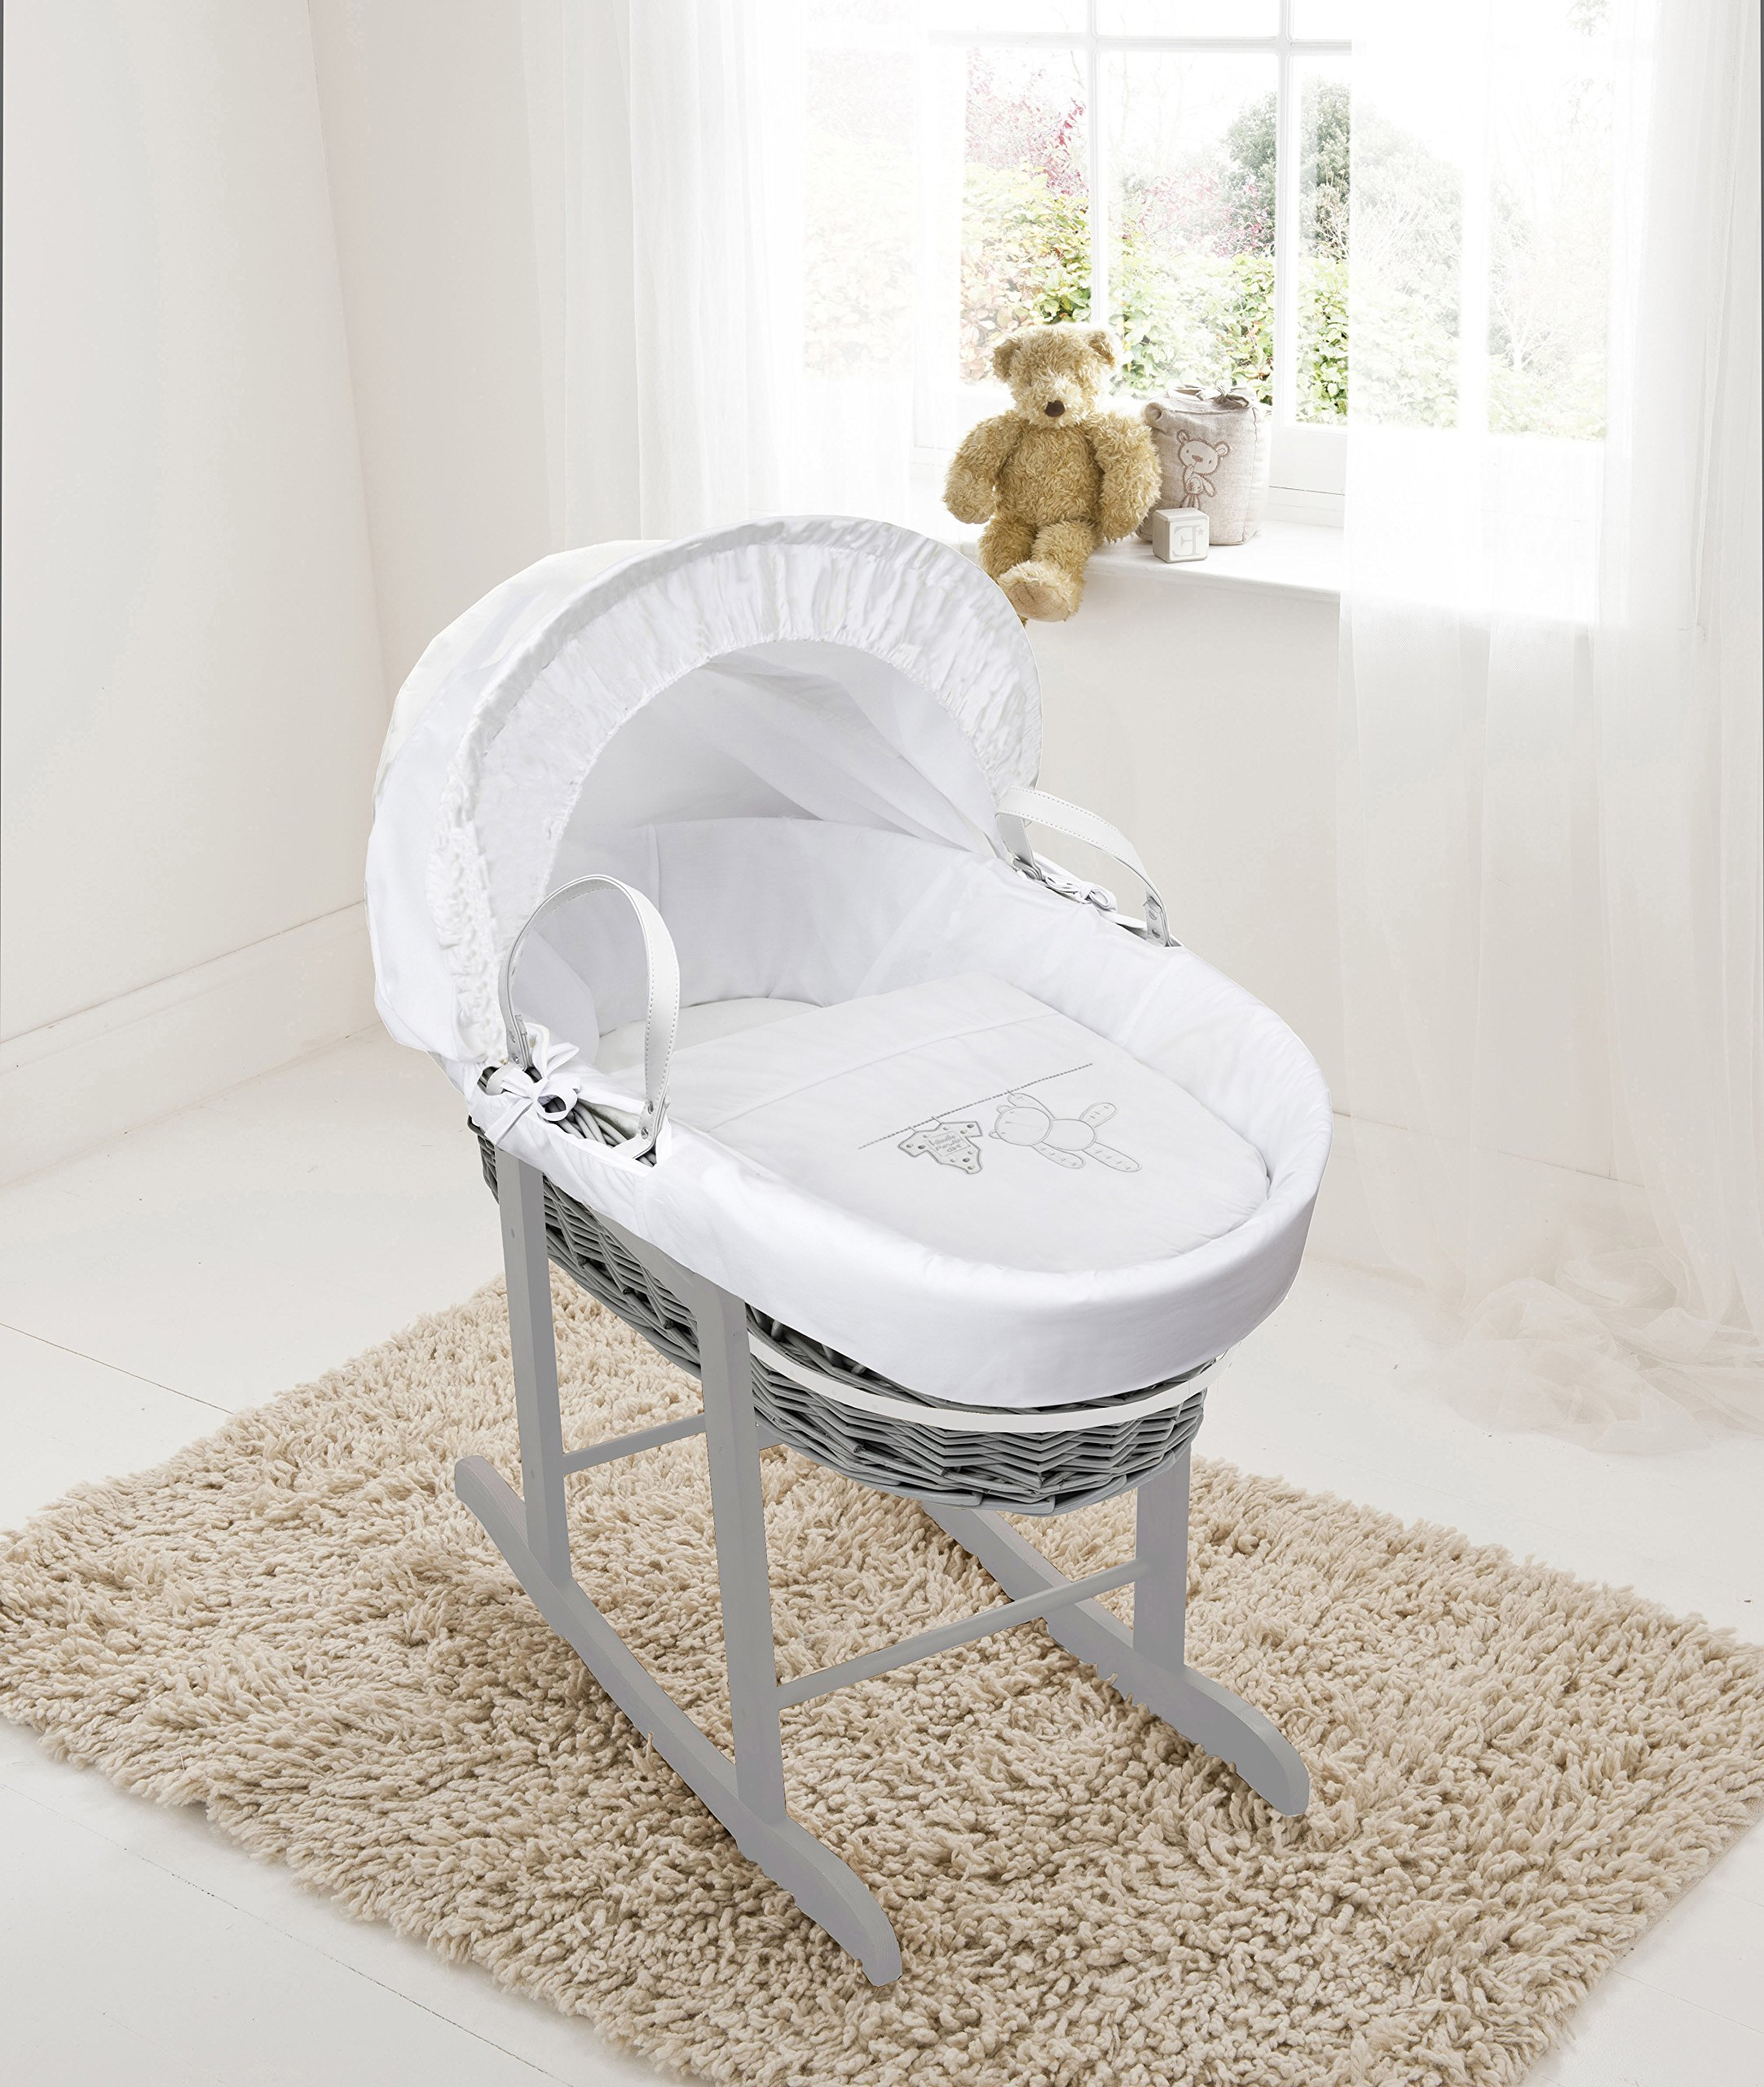 White Teddy Wash Day On Grey Wicker Moses Basket & Deluxe Dove Grey Rocking Stand Elegant Baby Suitable from newborn for up to 9kg, this Moses Basket uses Easy-care Poly Cotton with a soft padding surround Suitable from newborn to 9 months It also includes a comfortable mattress and an adjustable hood perfect to create a cosy sleeping space for your precious little one 1